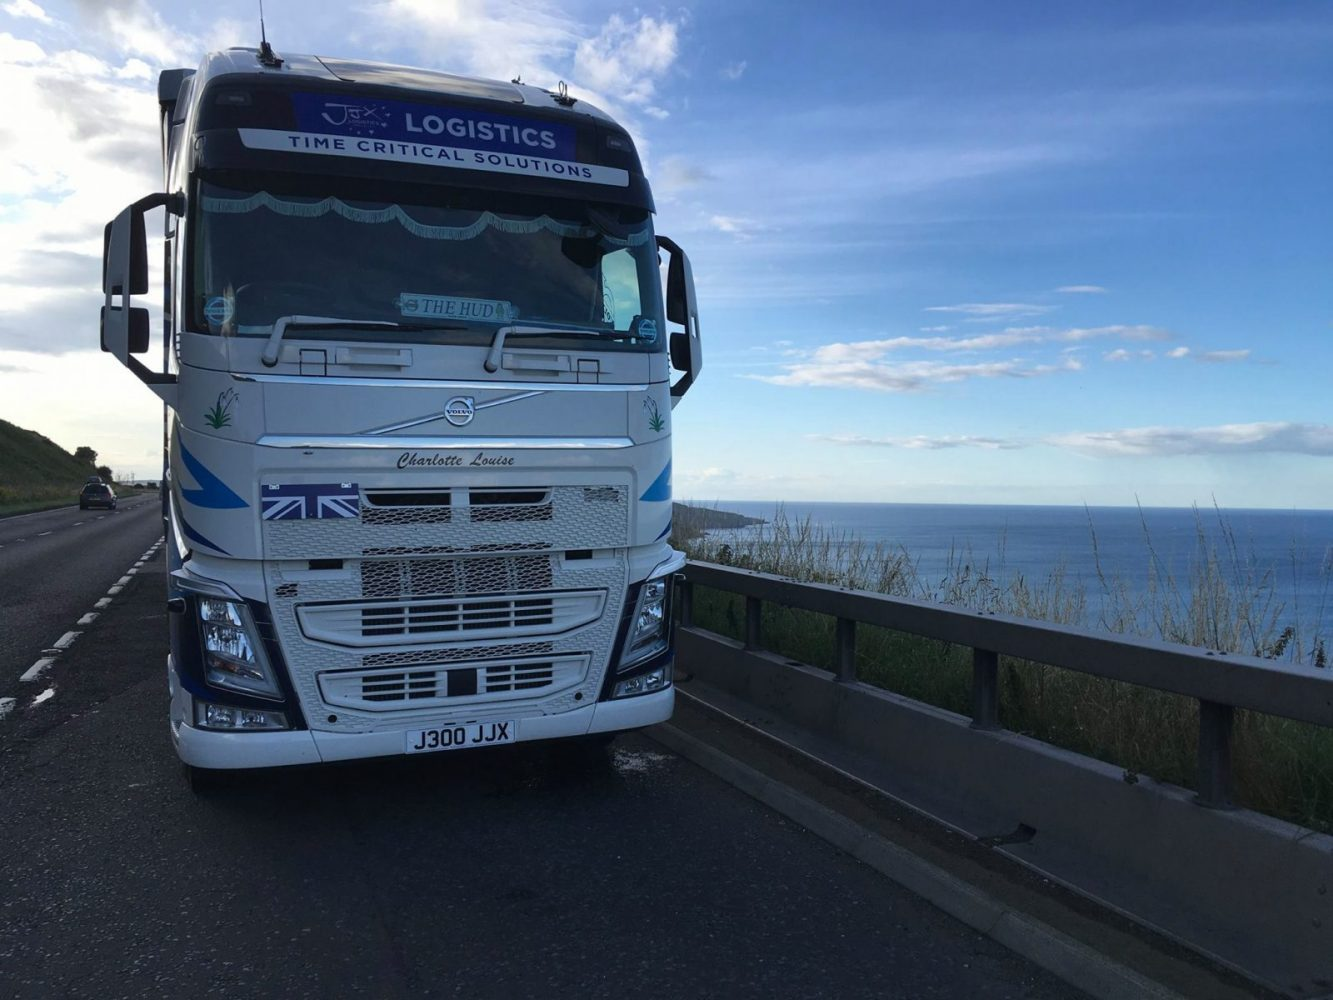 parked up by the sea